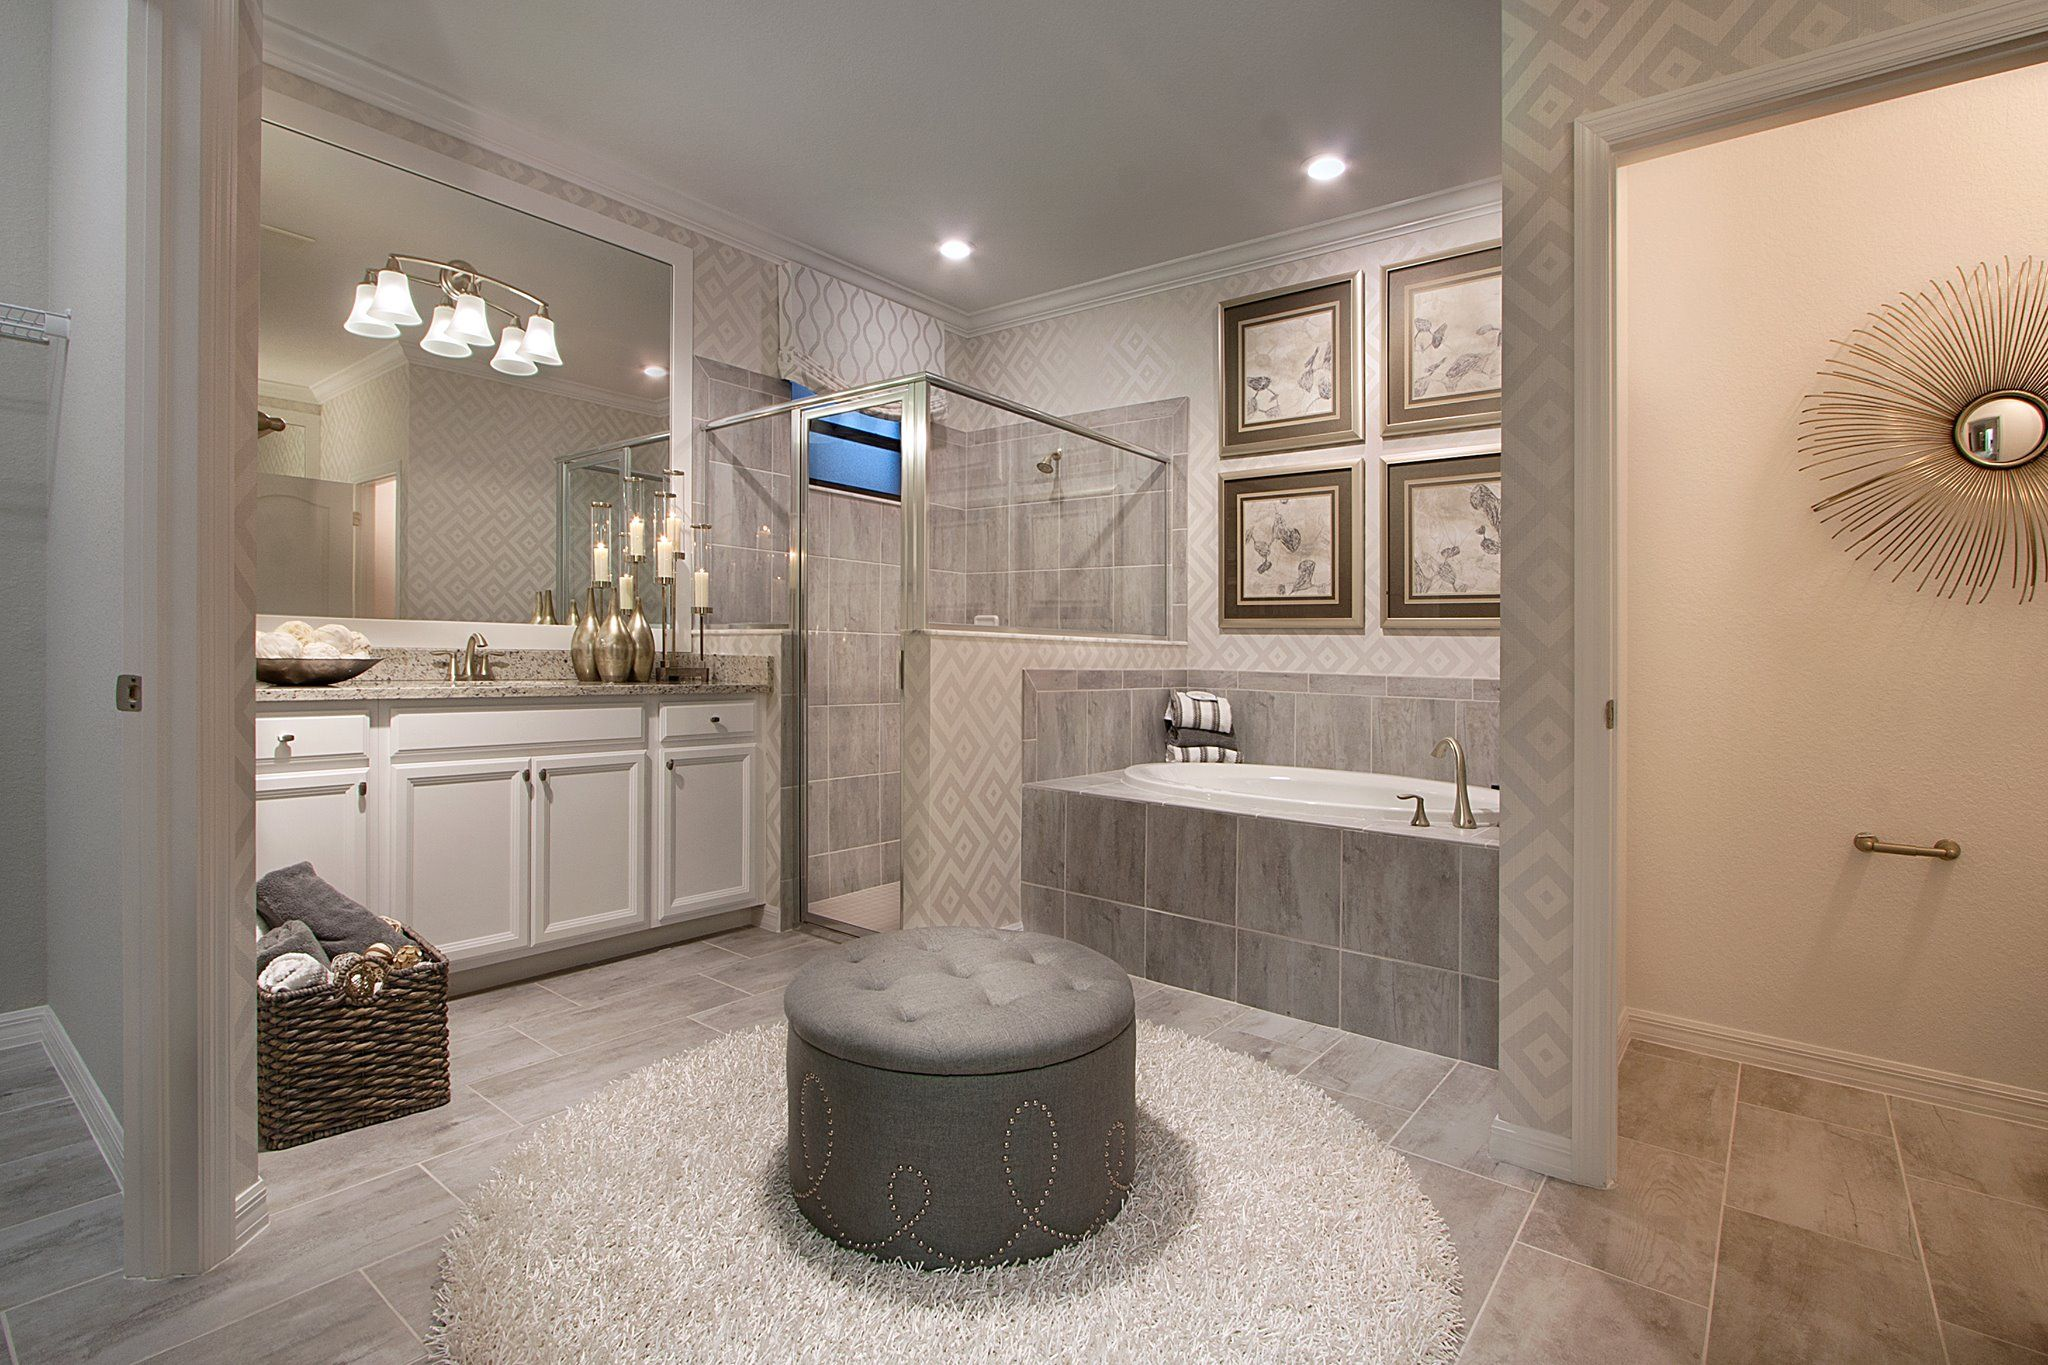 Would You Like To Have An Ottoman In Your Bathroom Dream Bathrooms Mold In Bathroom Modern Bathroom Design New home bathroom design